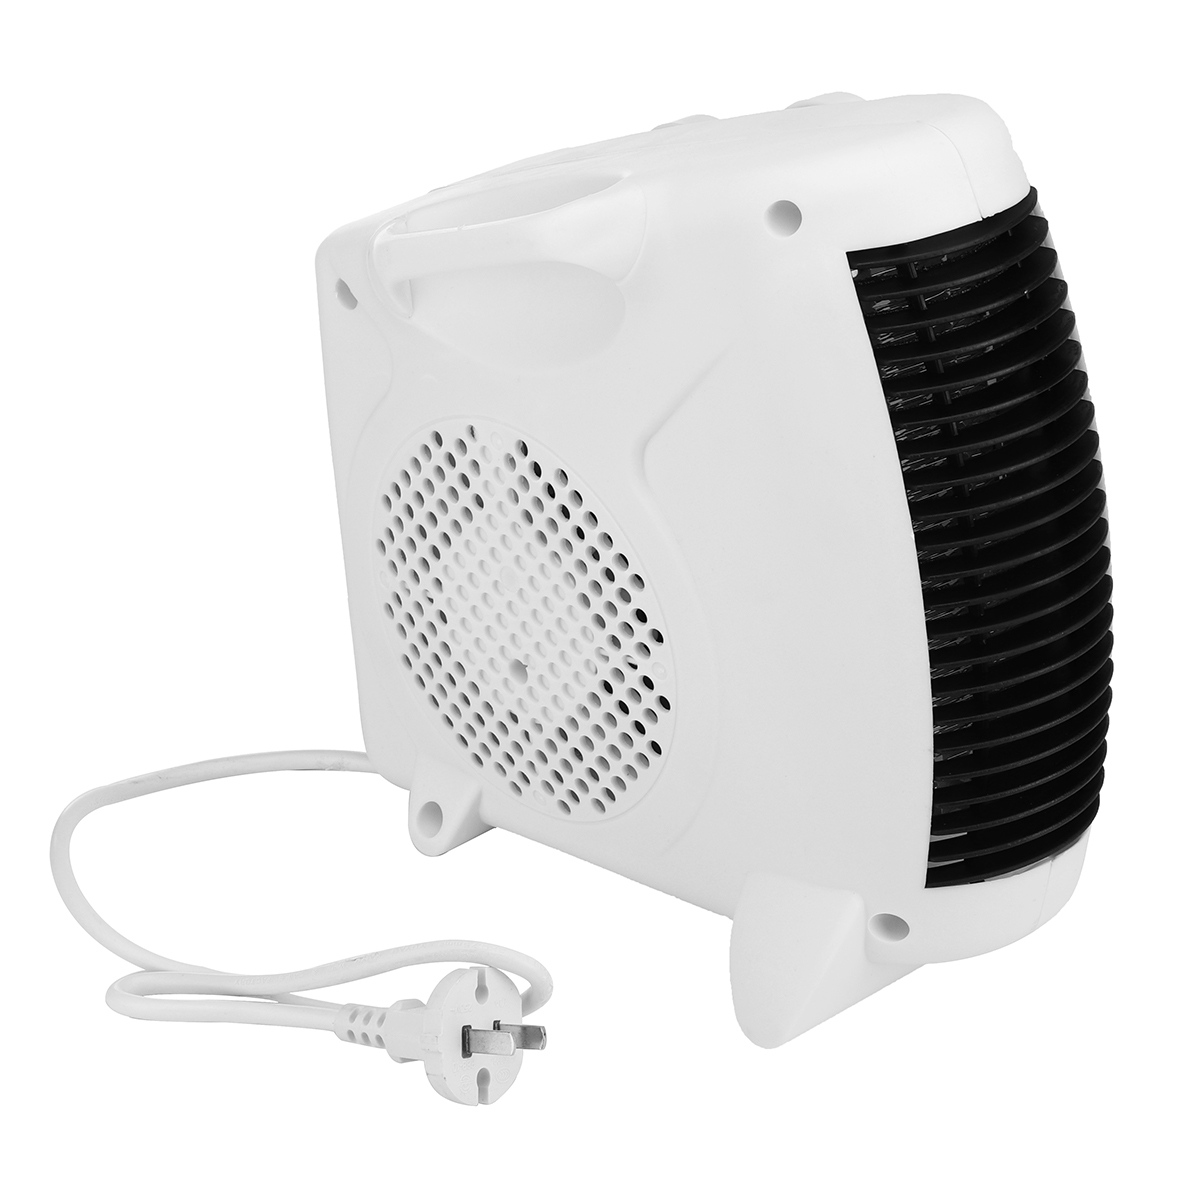 500W Air Cooler Mini Portable Air Conditioner Electric Air Heater Adjustable Energy Saving